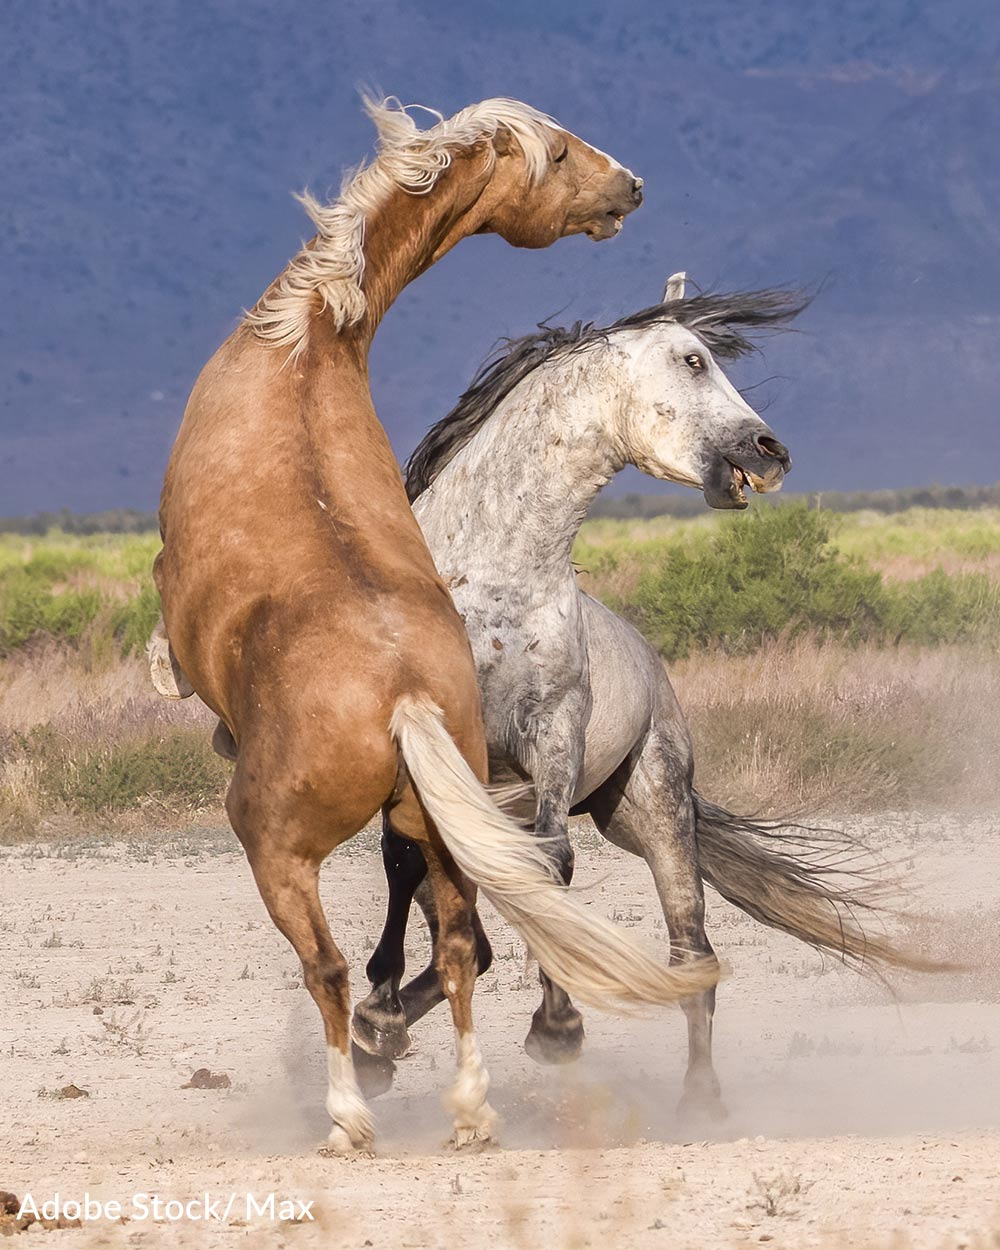 Horses can be badly hurt or killed in fights.